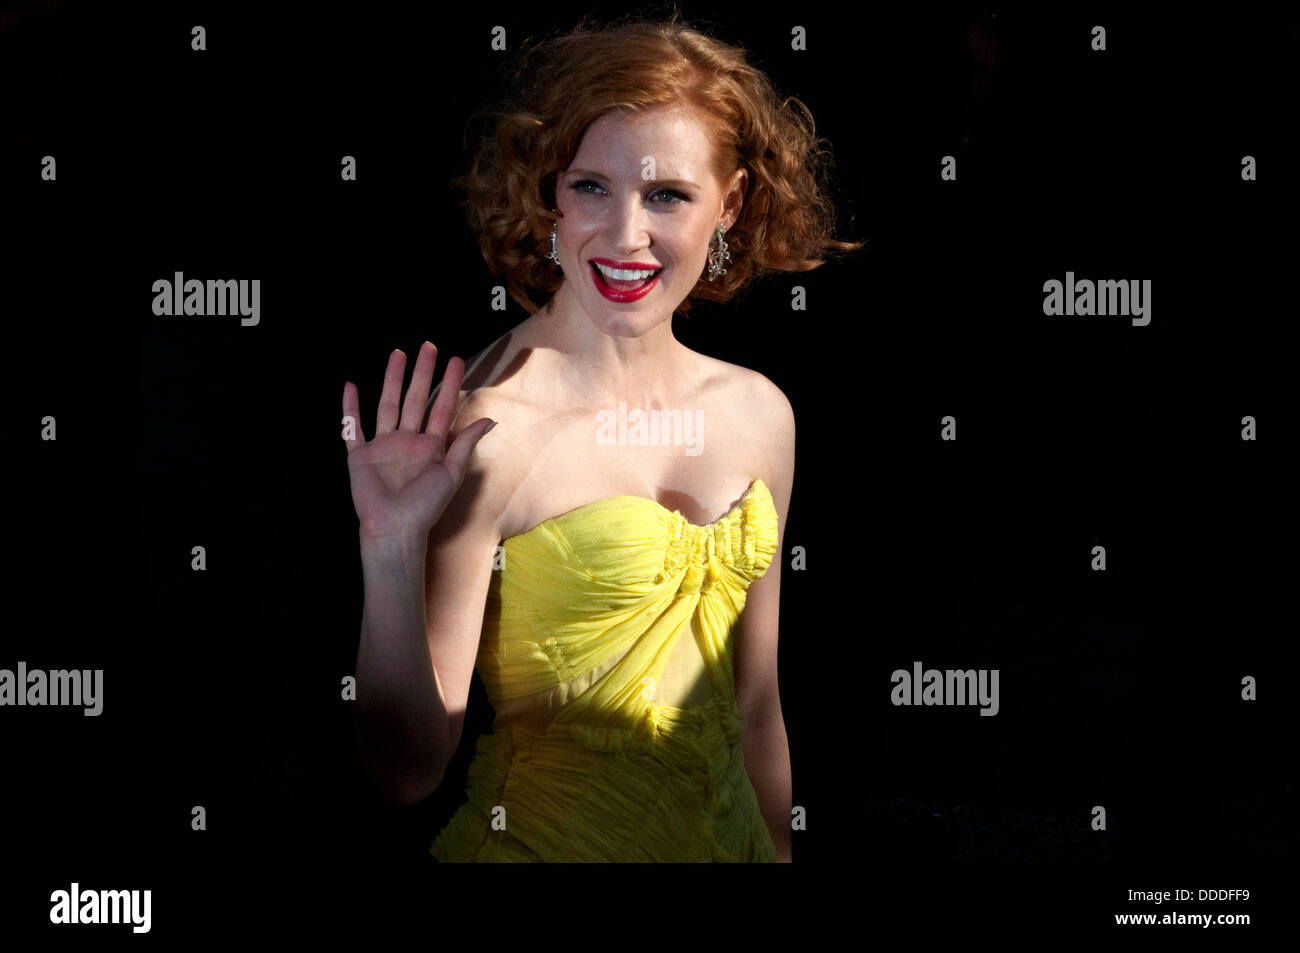 Europe, France, Cannes. American actress Jessica Chastain, before the red carpet to present the movie director Terrence - Stock Image